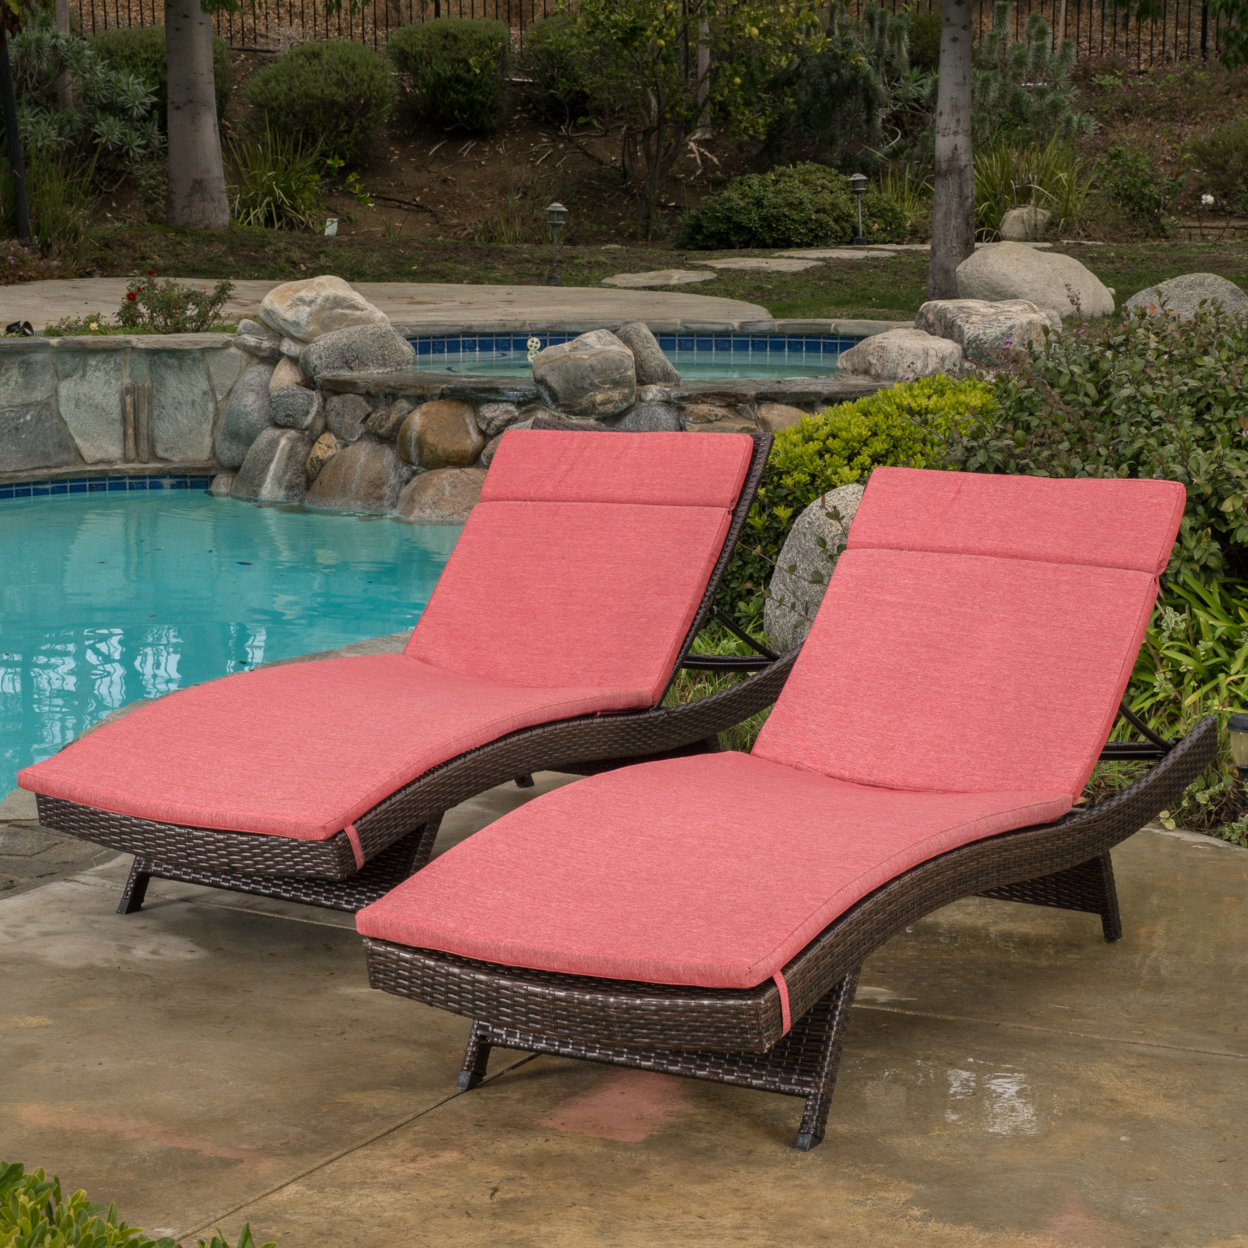 Lakeport Outdoor Adjustable Chaise Lounge Chairs w/ Cushions (set of 2) (1)